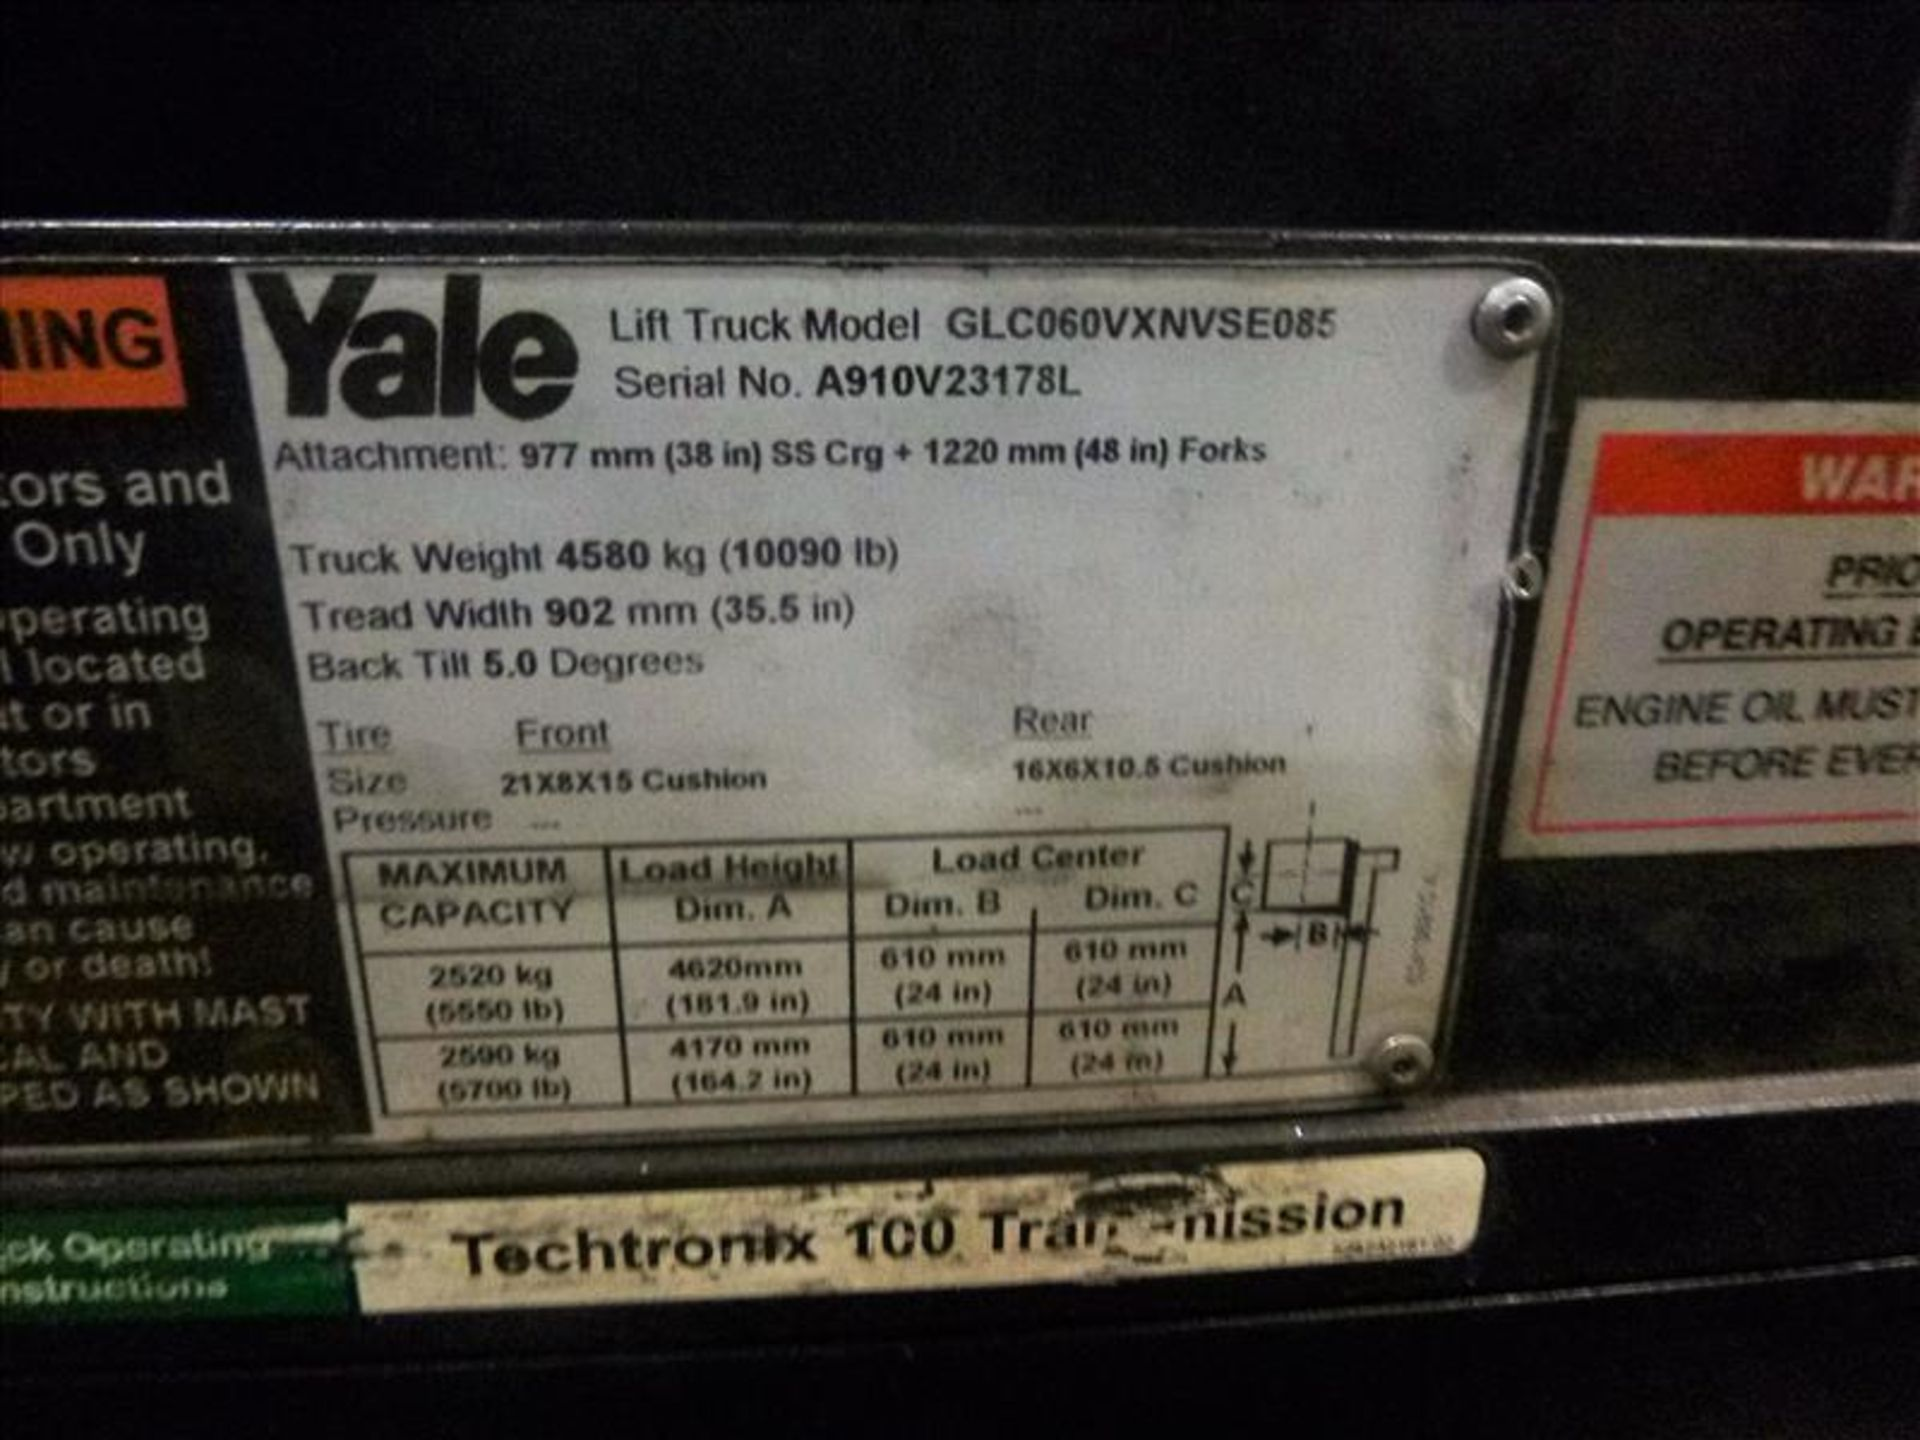 Yale fork lift truck, mod. GLC060VXNSEE085, ser. no. A910V23178L, LPG, 5500 lbs cap., 181 in. lift - Image 4 of 4